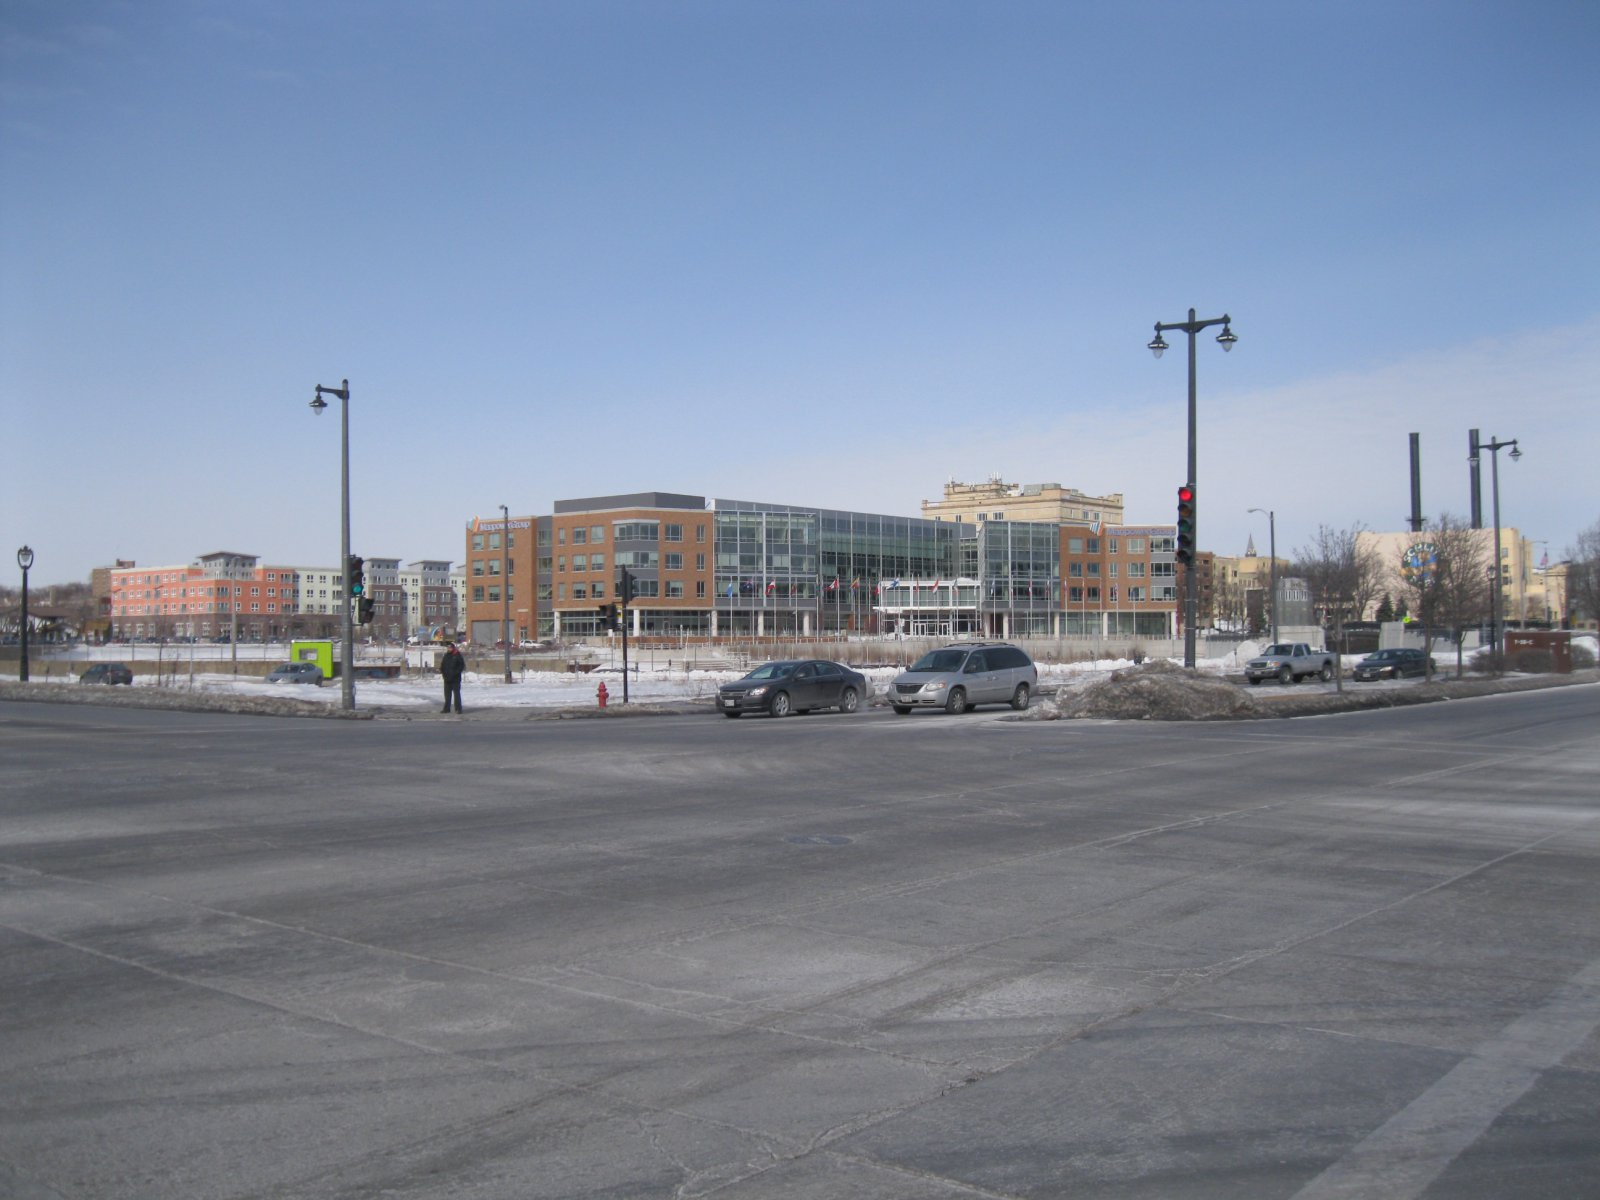 Intersection of N. Water and E. Knapp streets - looking northwest.